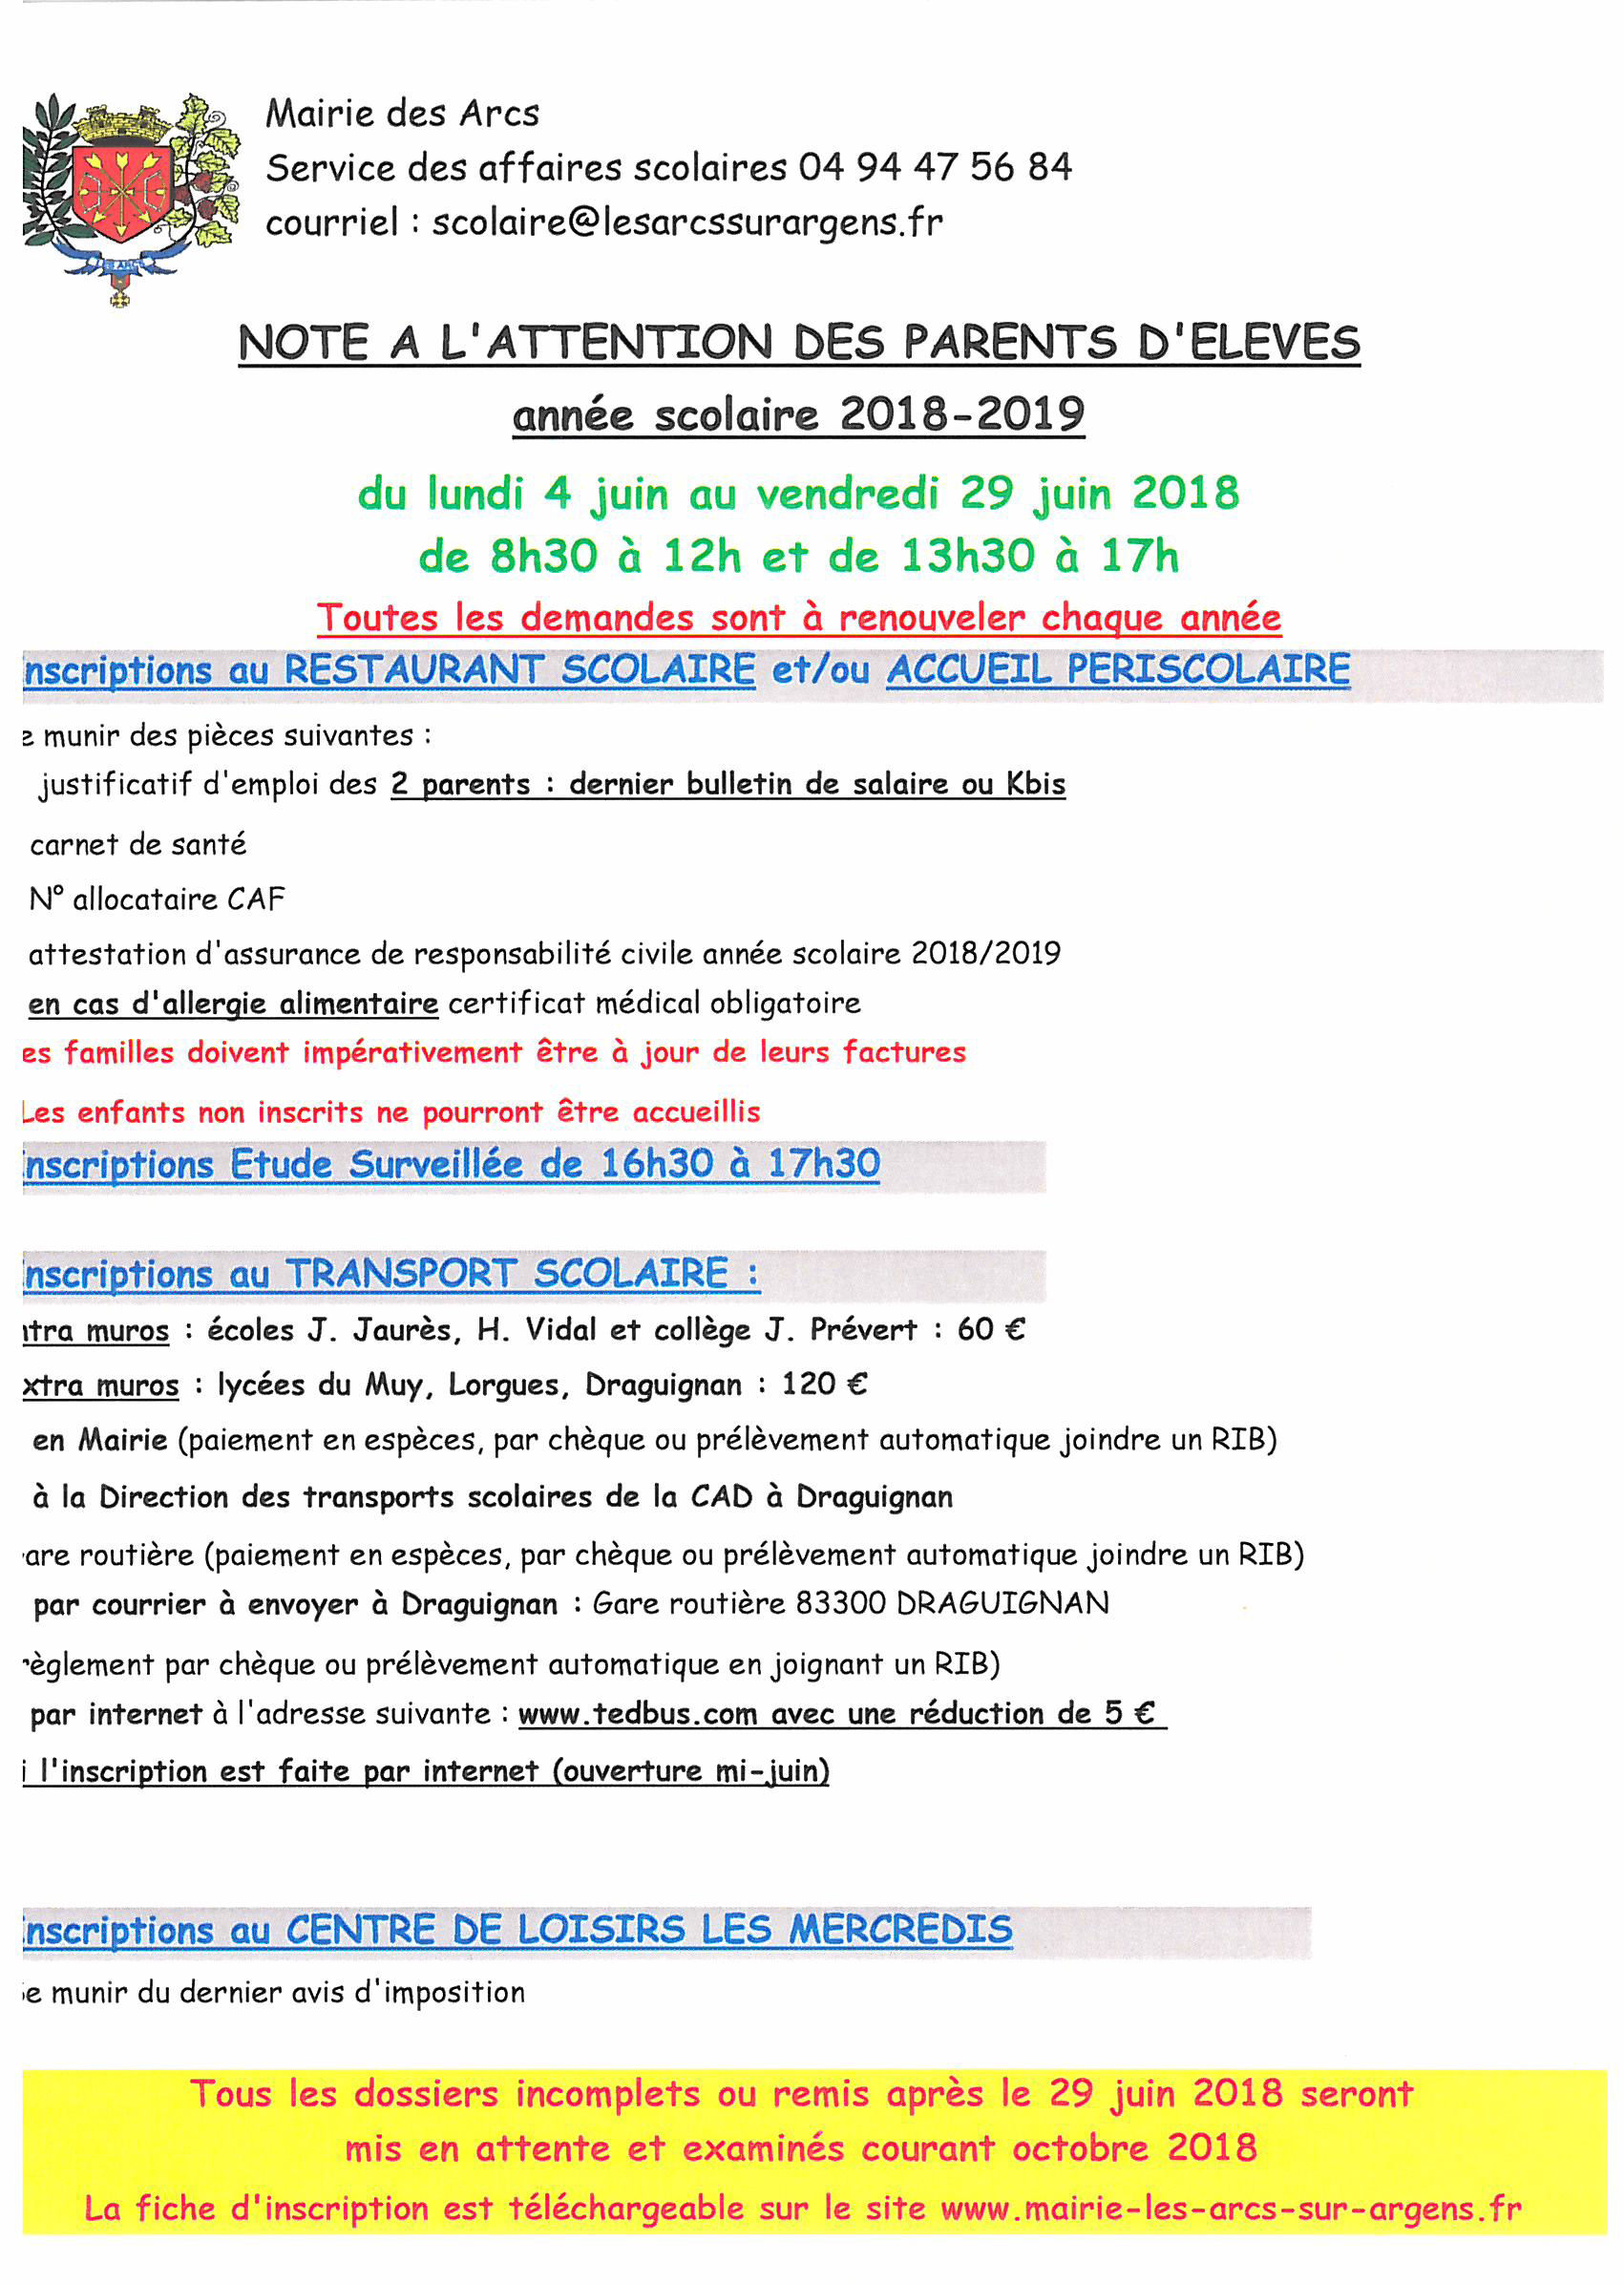 ejf note rentree scol 2018 2019